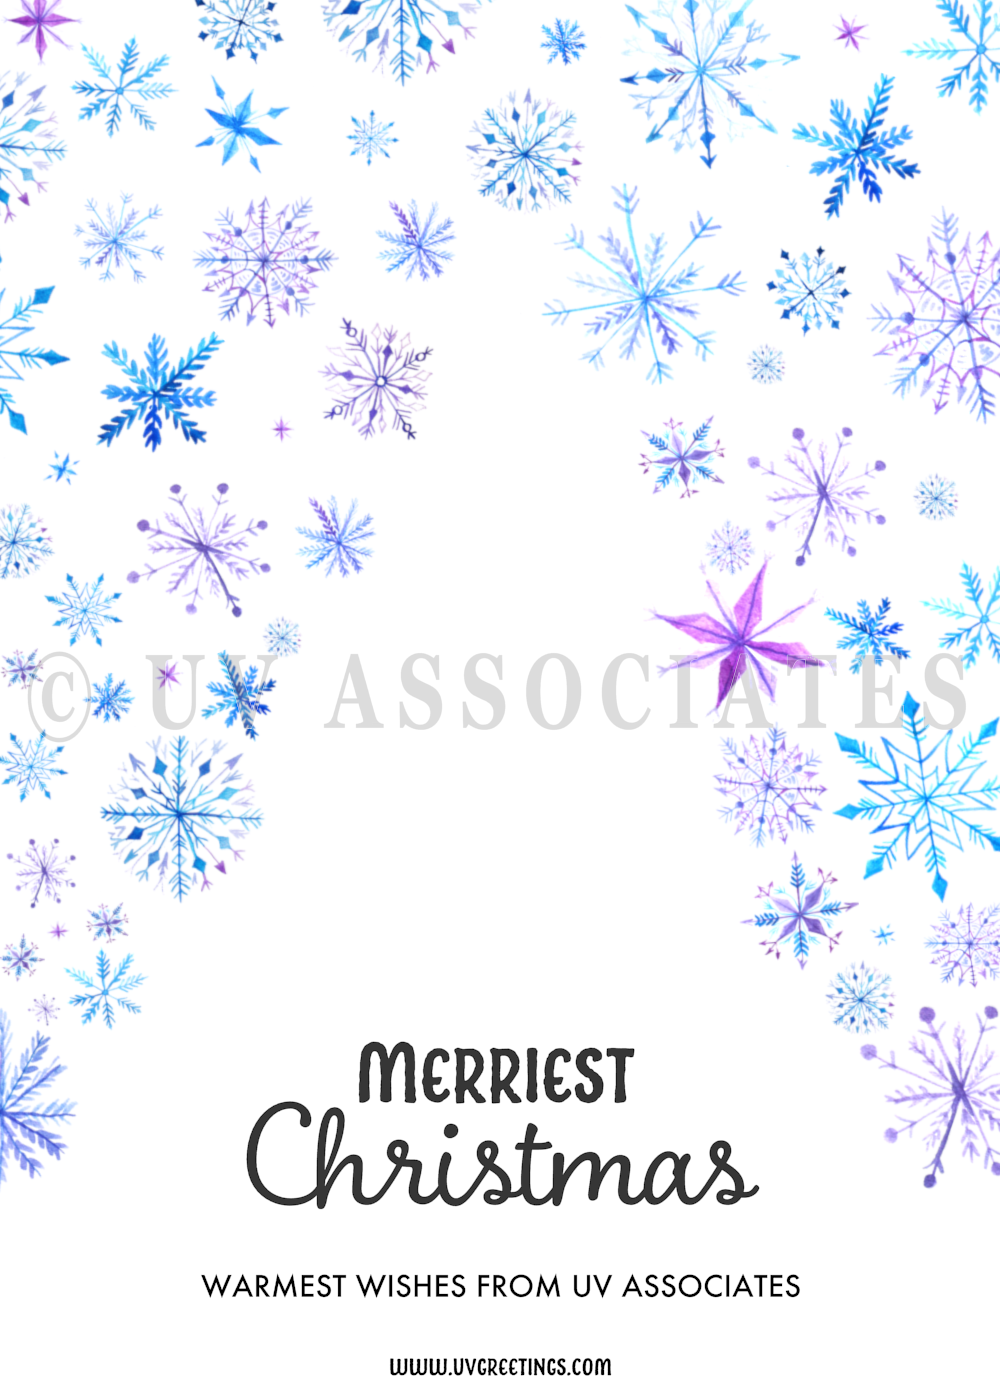 Watercolor Snowflakes creating a Christmas Tree Shaped Space